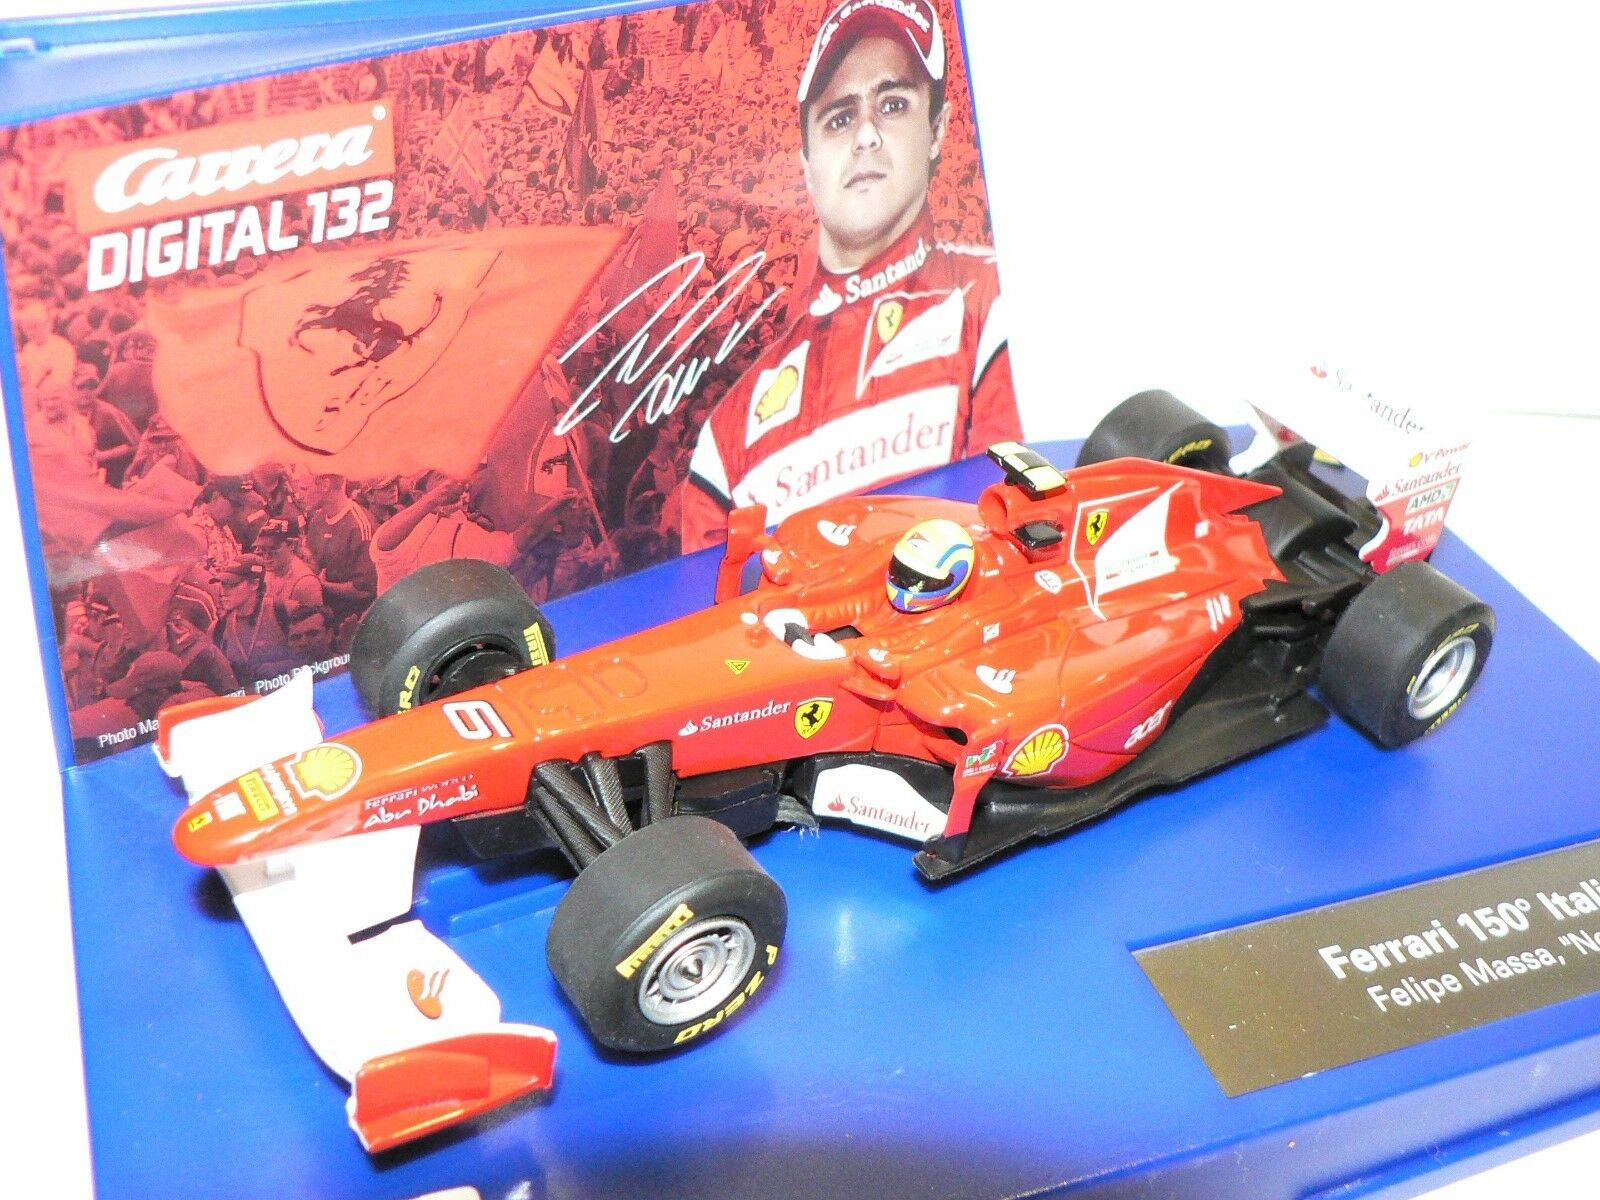 Carrera Digital132 30627 Ferrari 150 Italia Felipe Massa No. 6 New